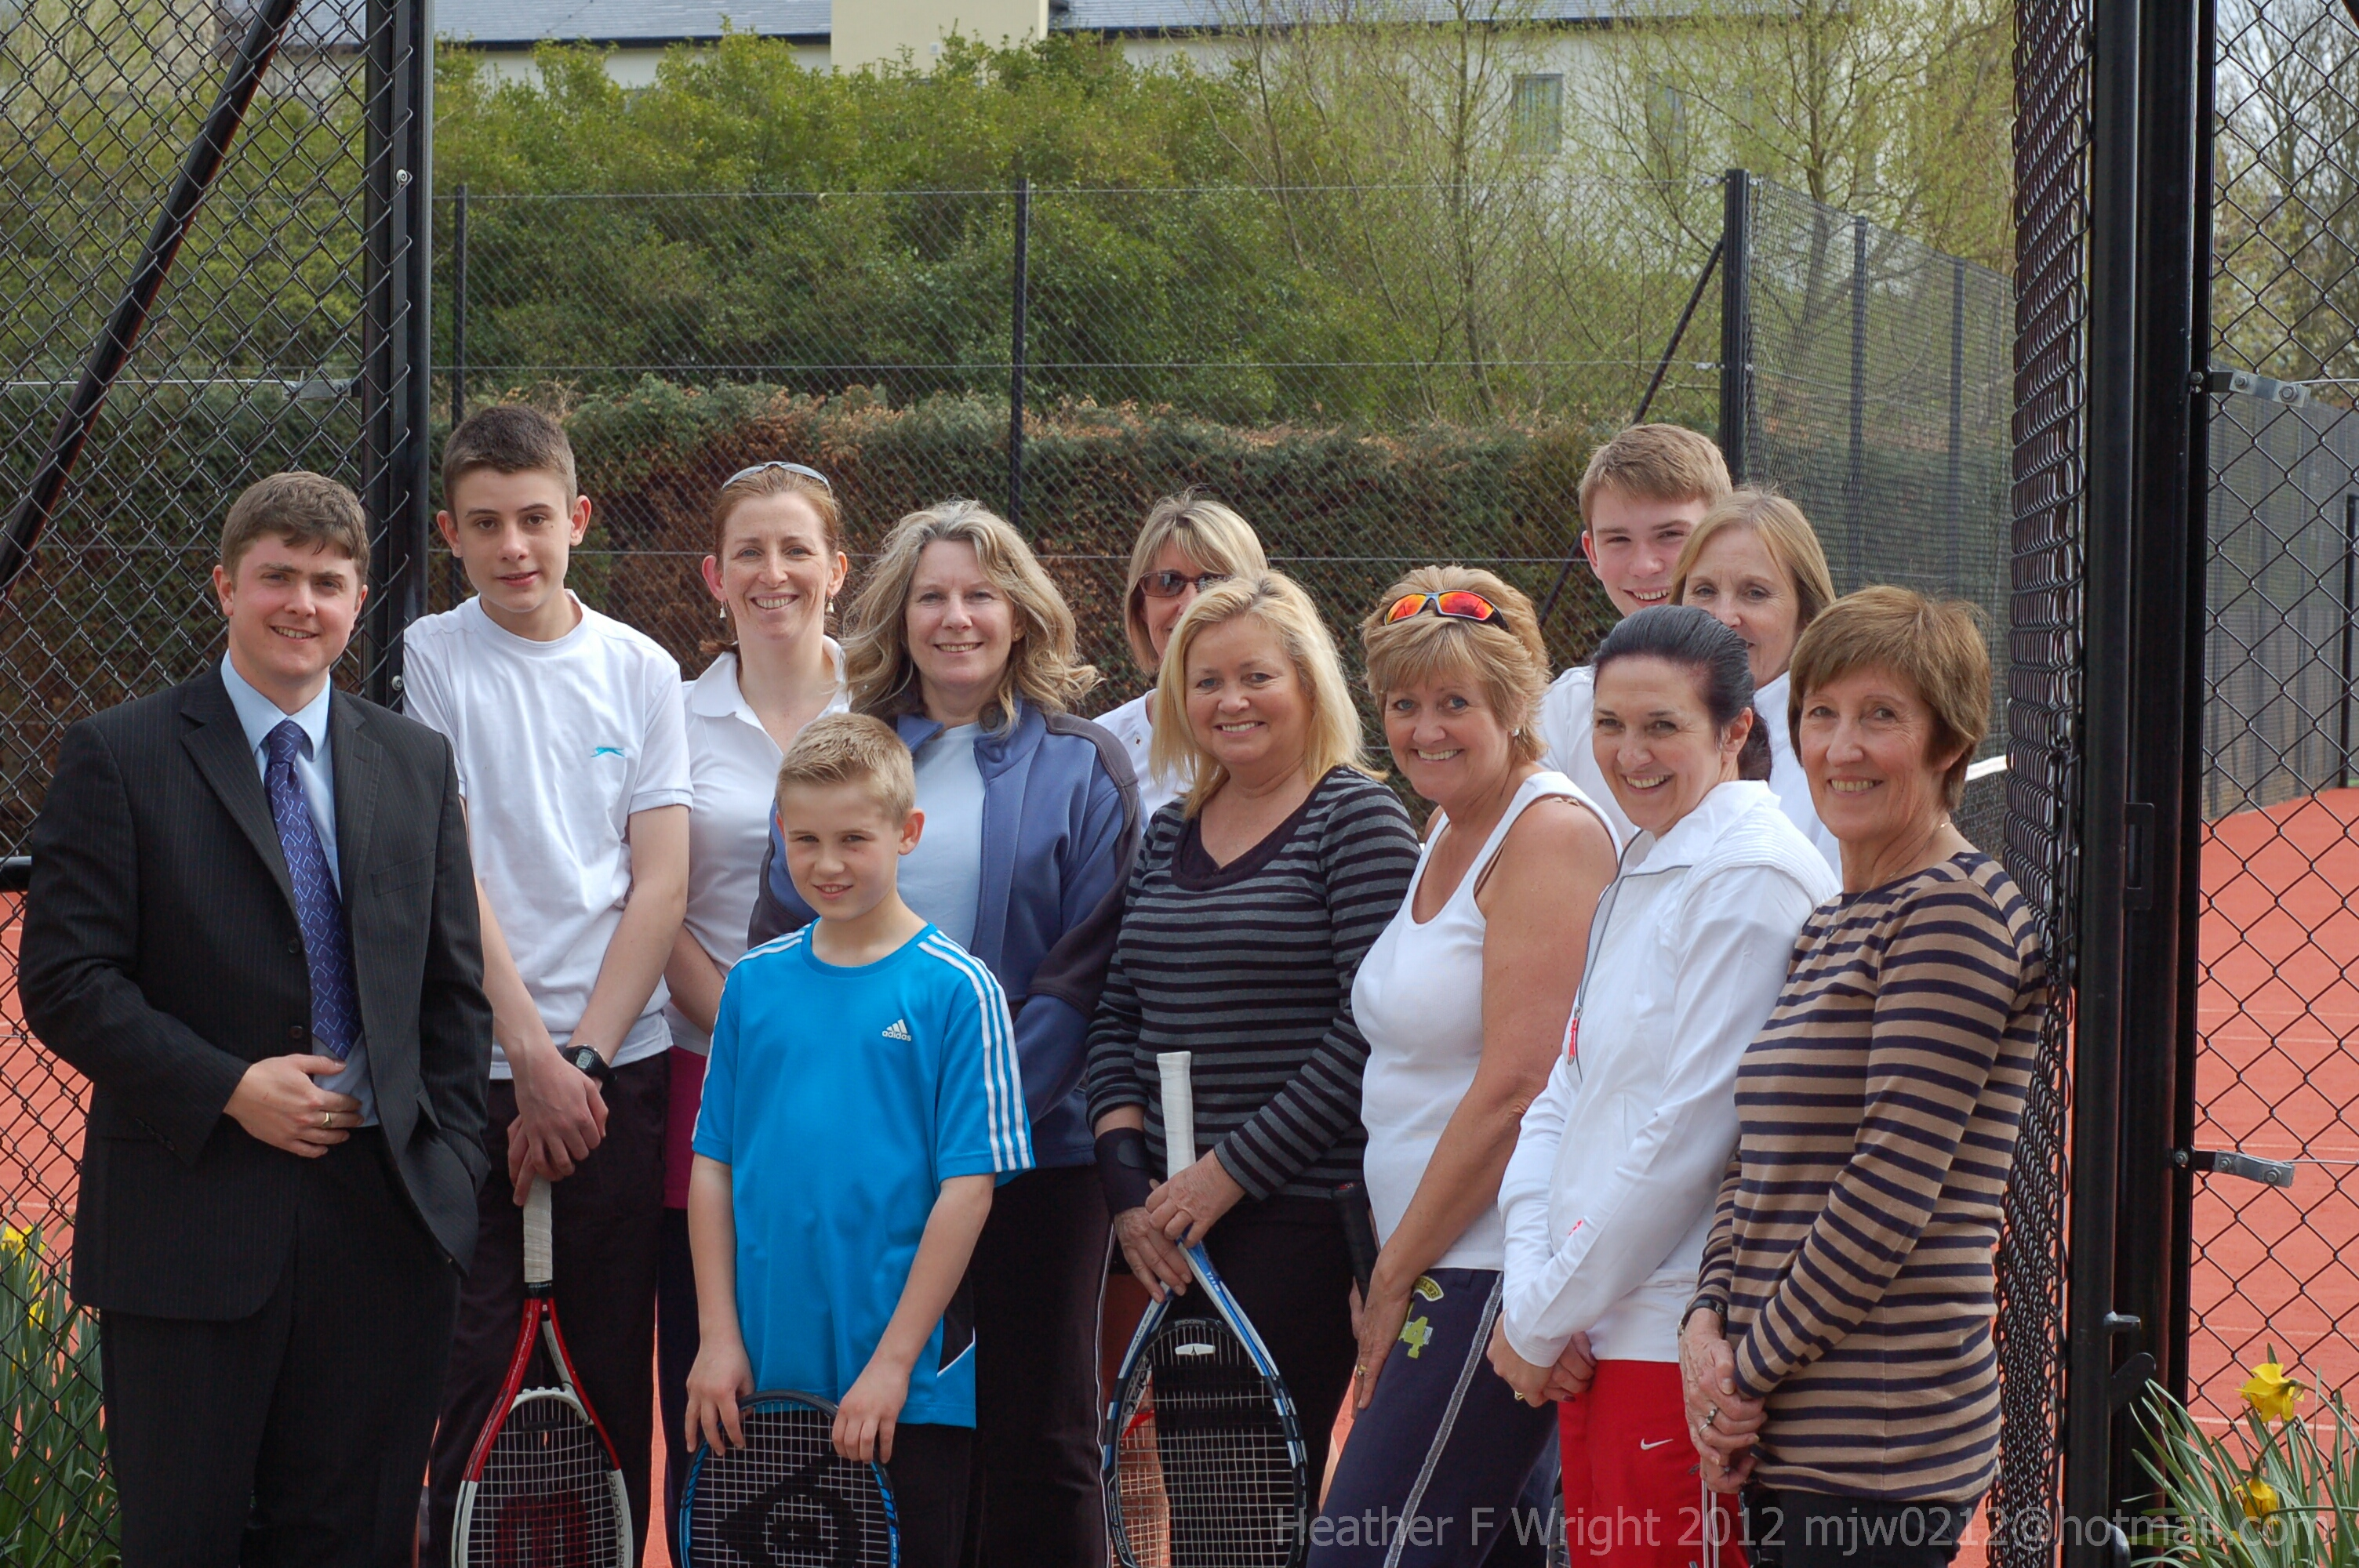 Ormskirk Tennis Club Re-Opens April 7th 2012